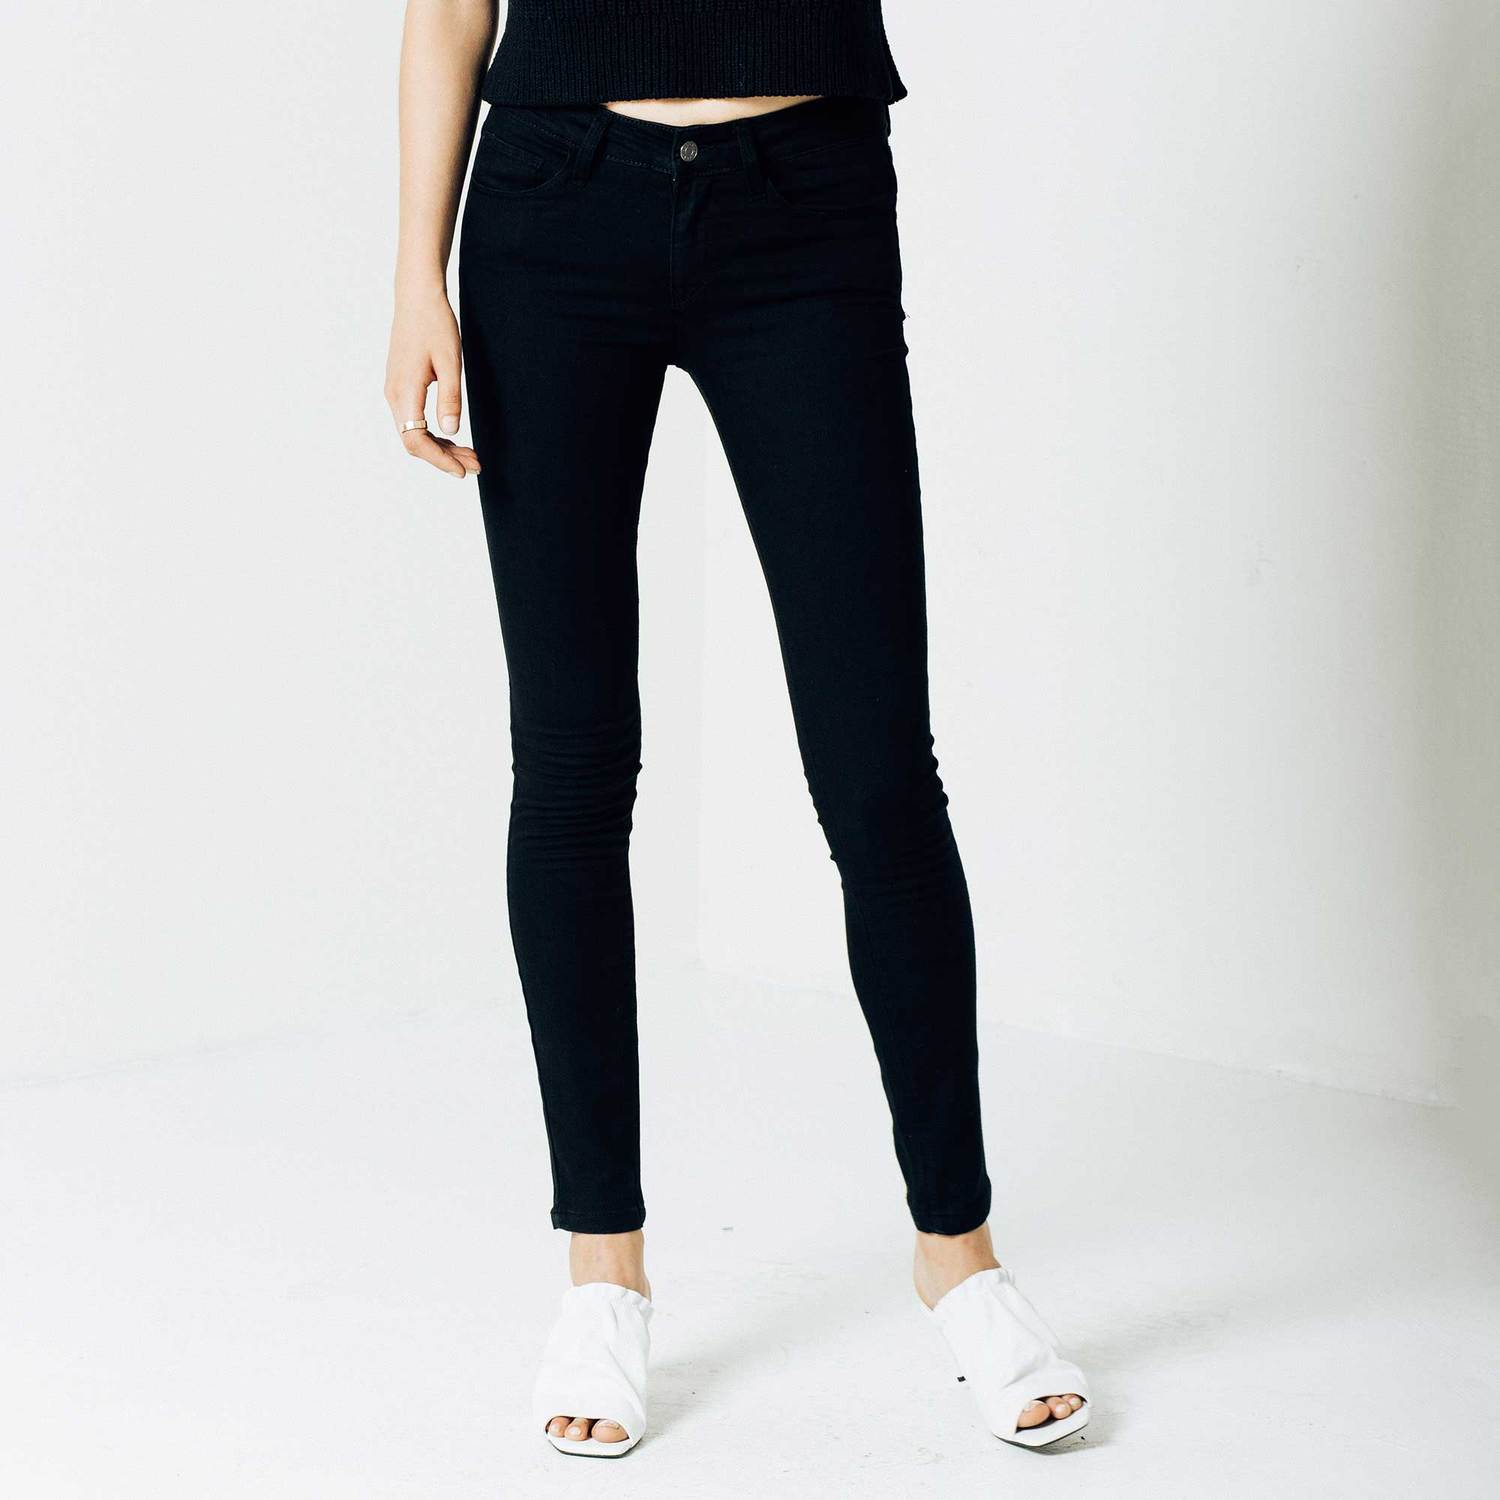 Mid Rise Skinny Jeans in Black Powerstretch